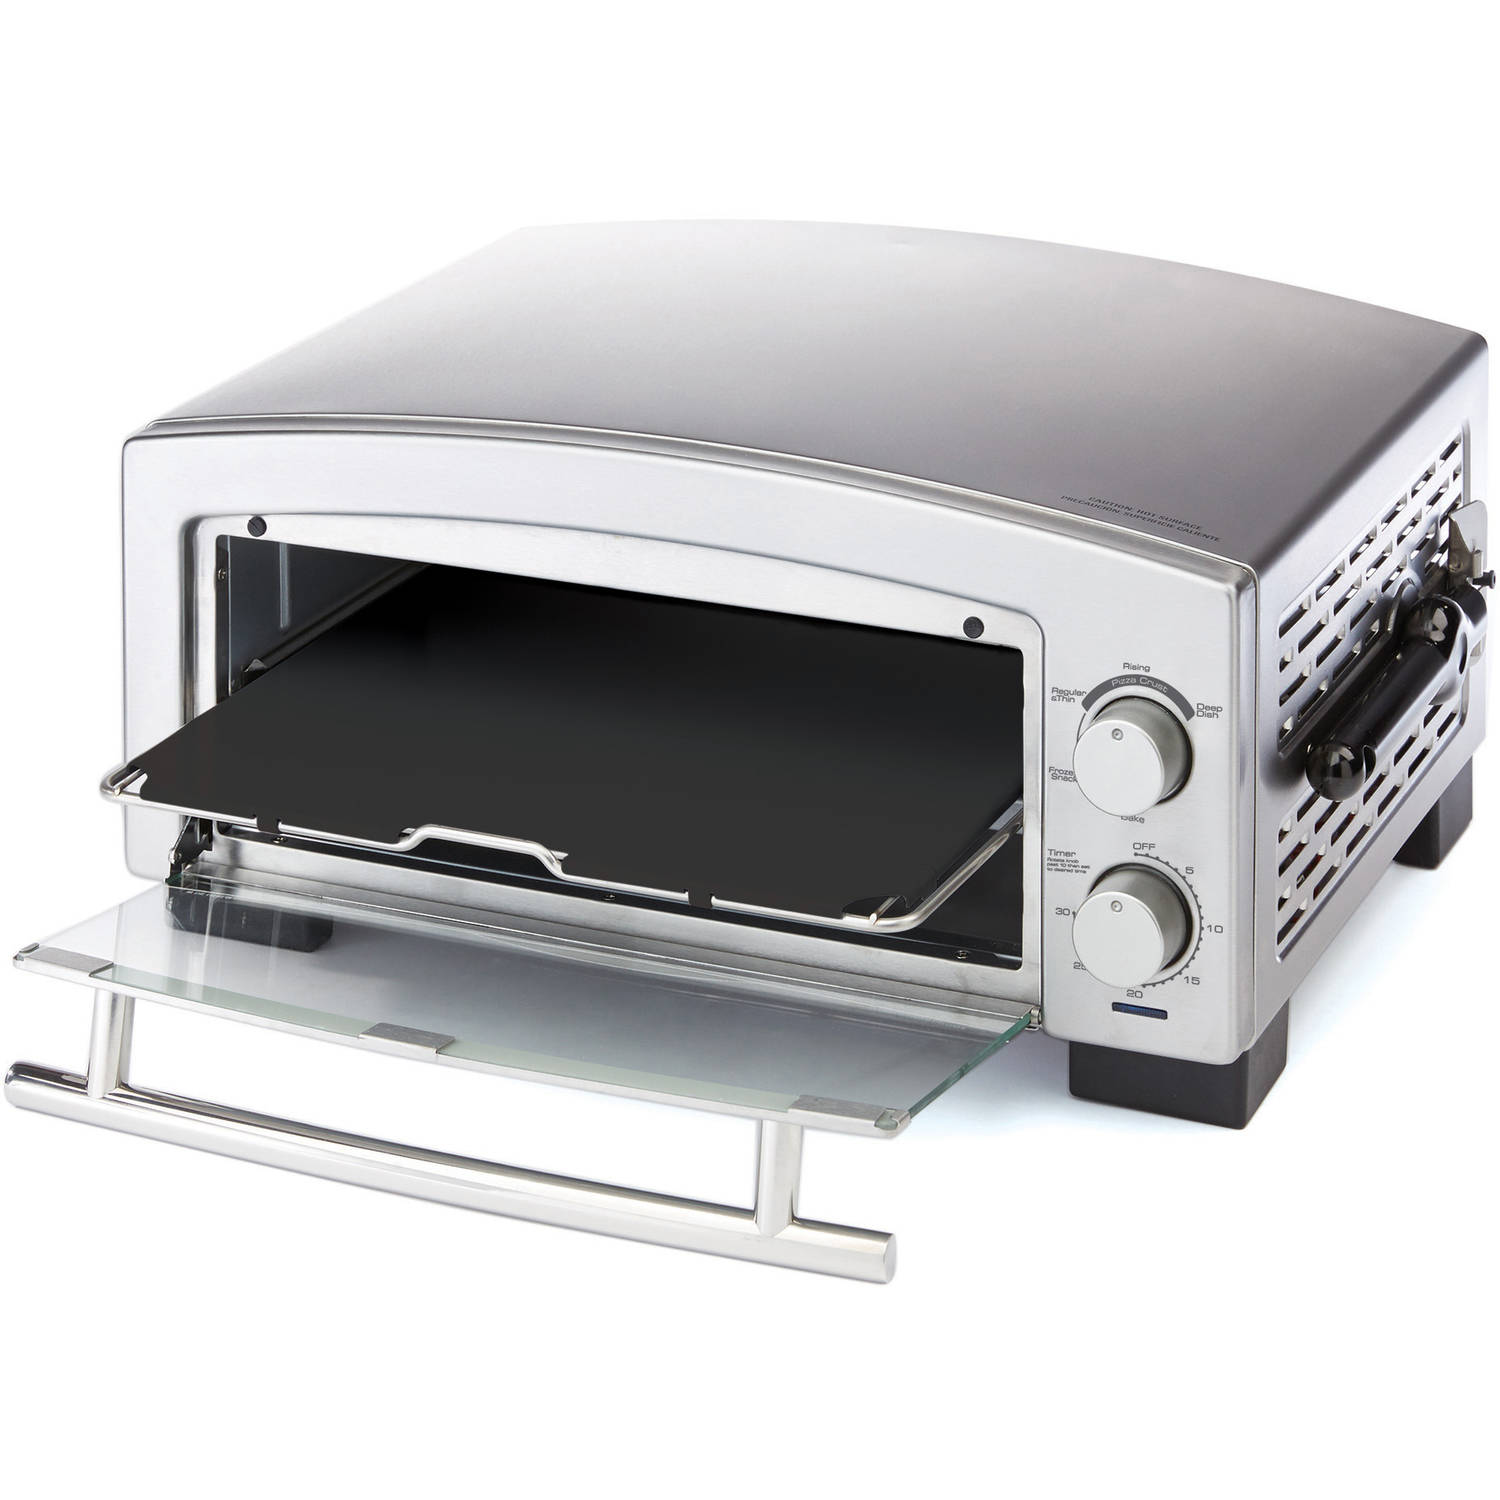 Black & Decker 5-Minute Pizza Oven